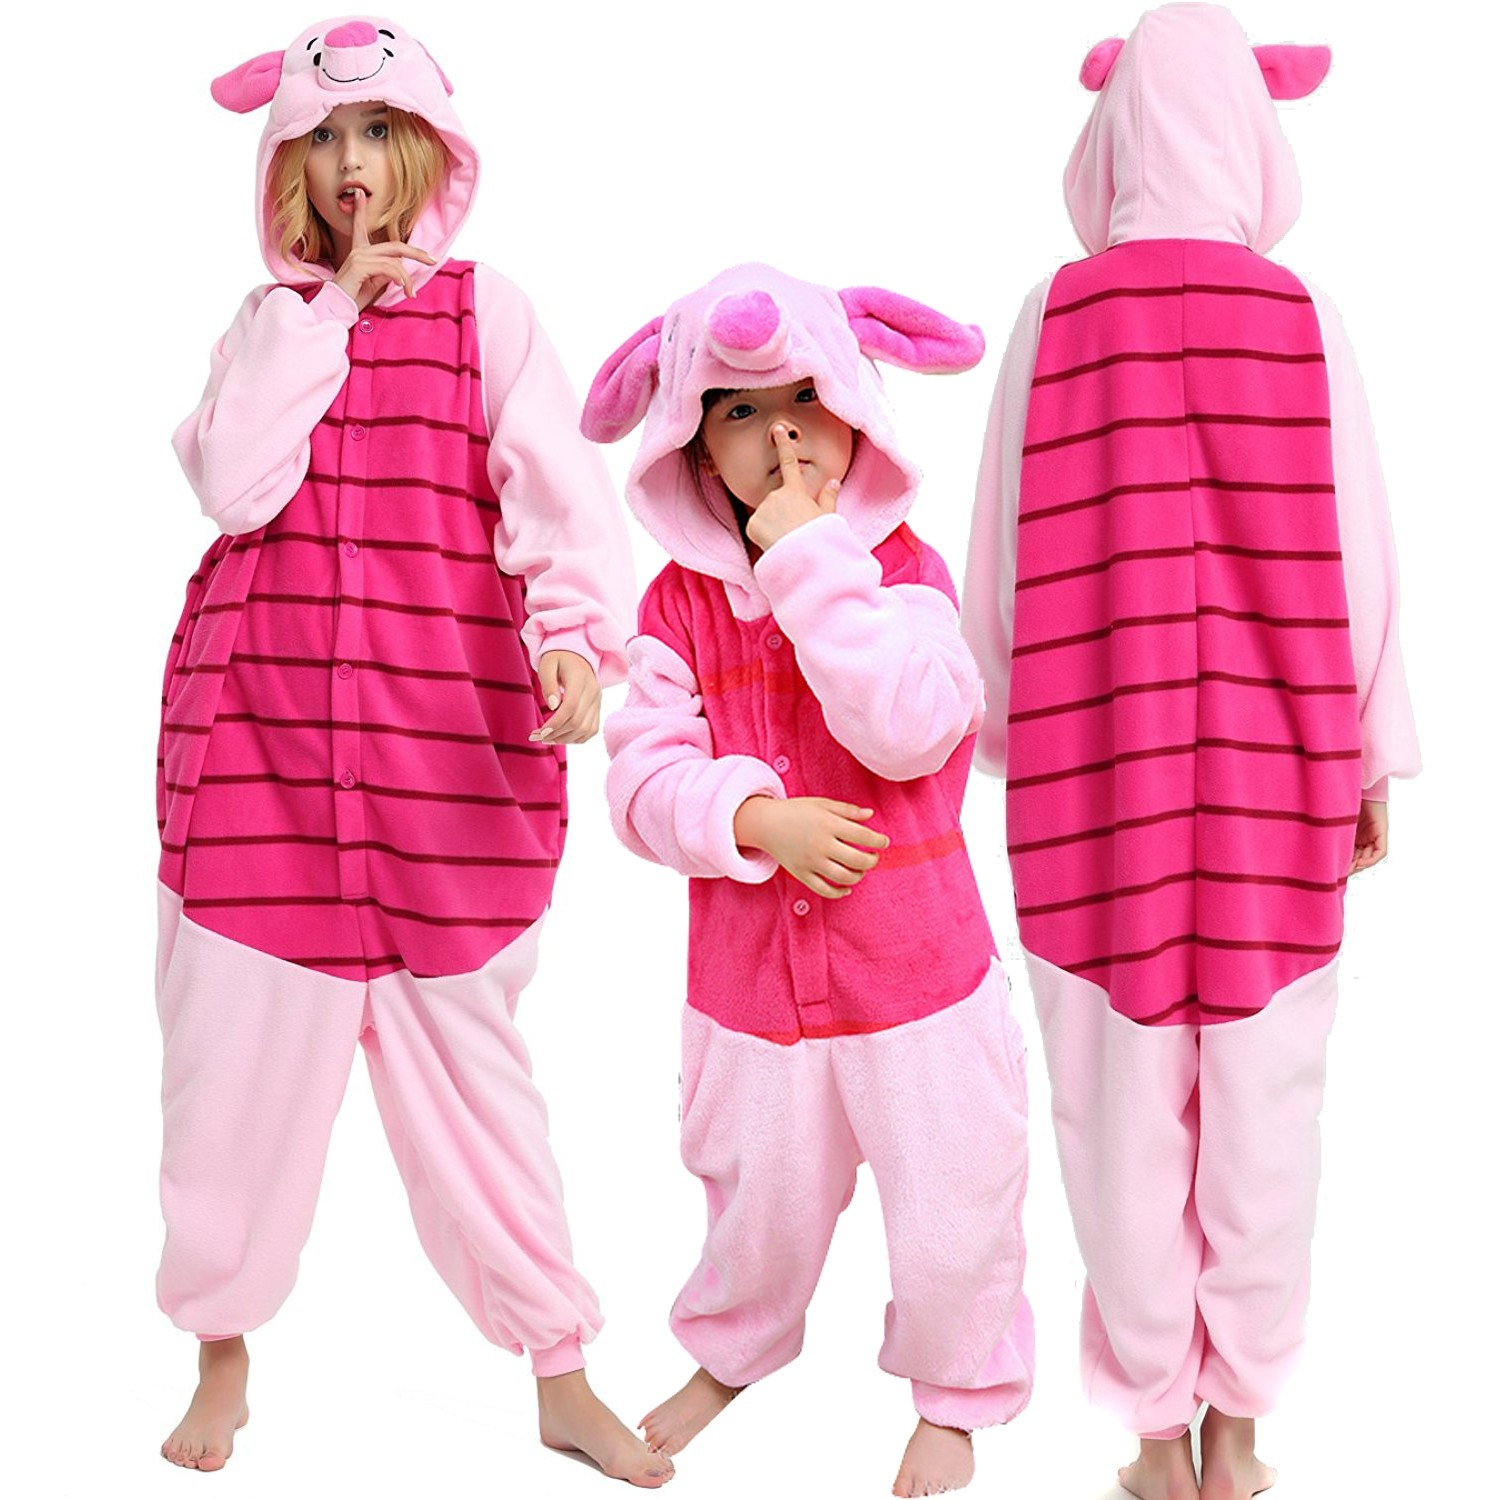 b3969804e691 Pig Onesie for Women   Kids Winnie the Pooh Piglet Onesie Party Halloween  Costumes